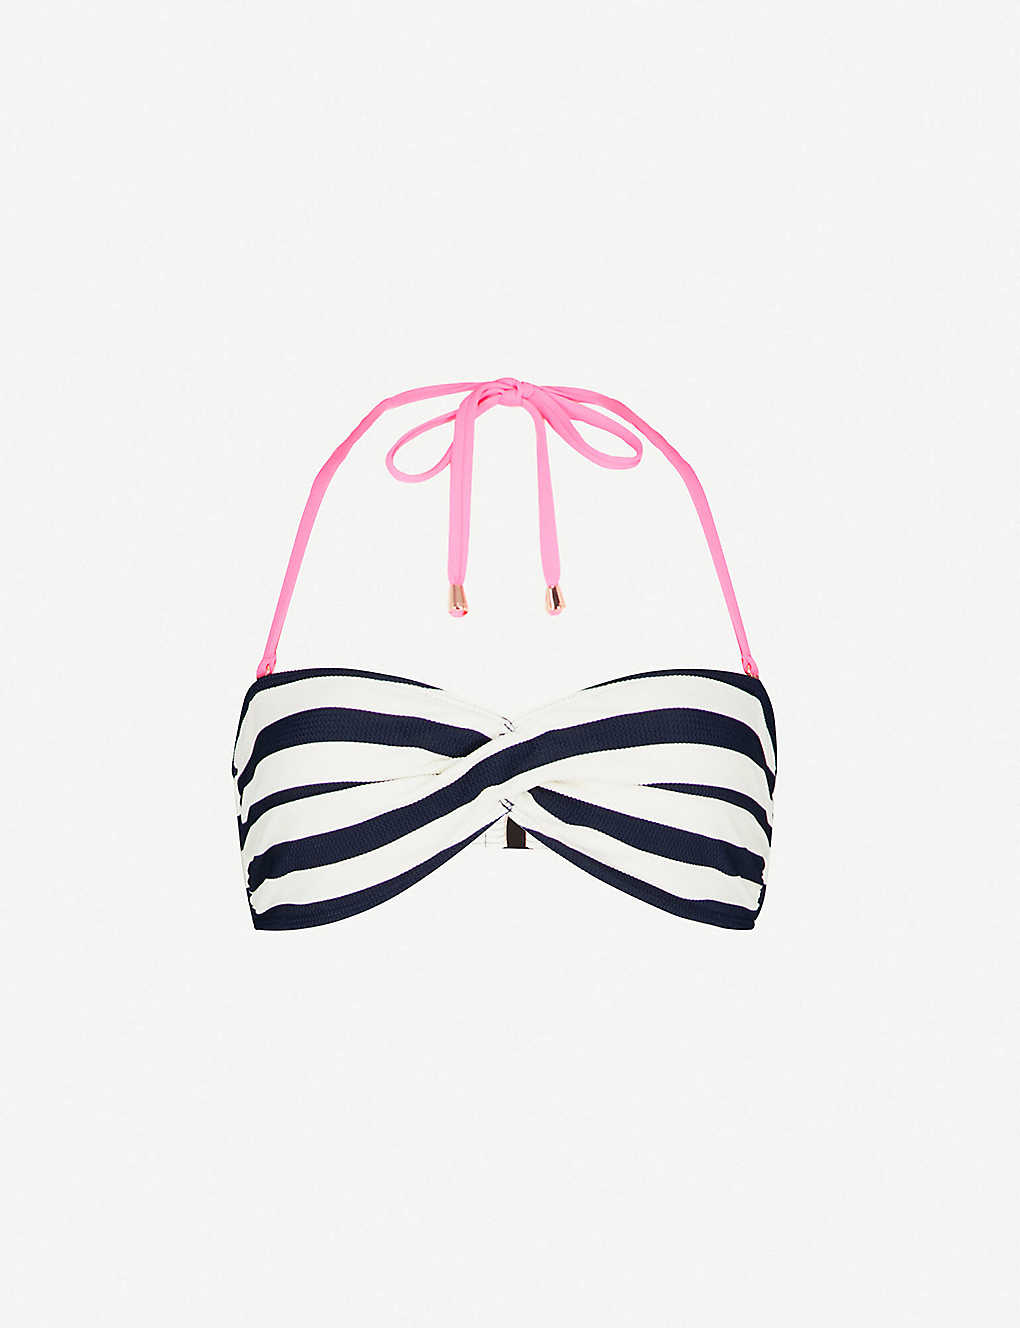 7366a7c247197 TED BAKER - Stafney textured stripe bandeau bikini top | Selfridges.com